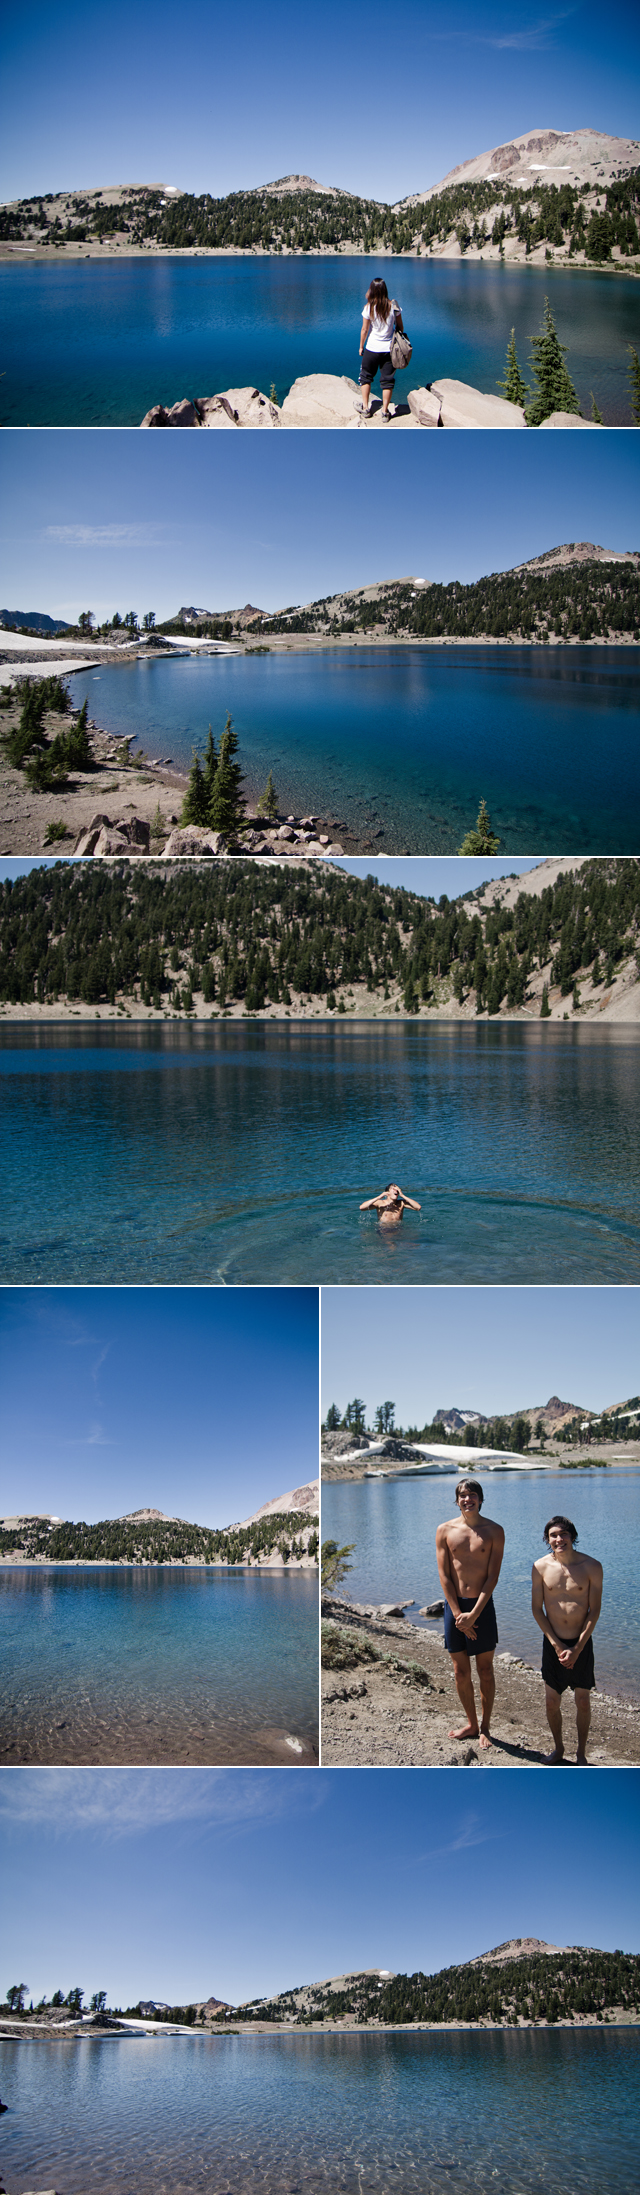 lake_helen_collage